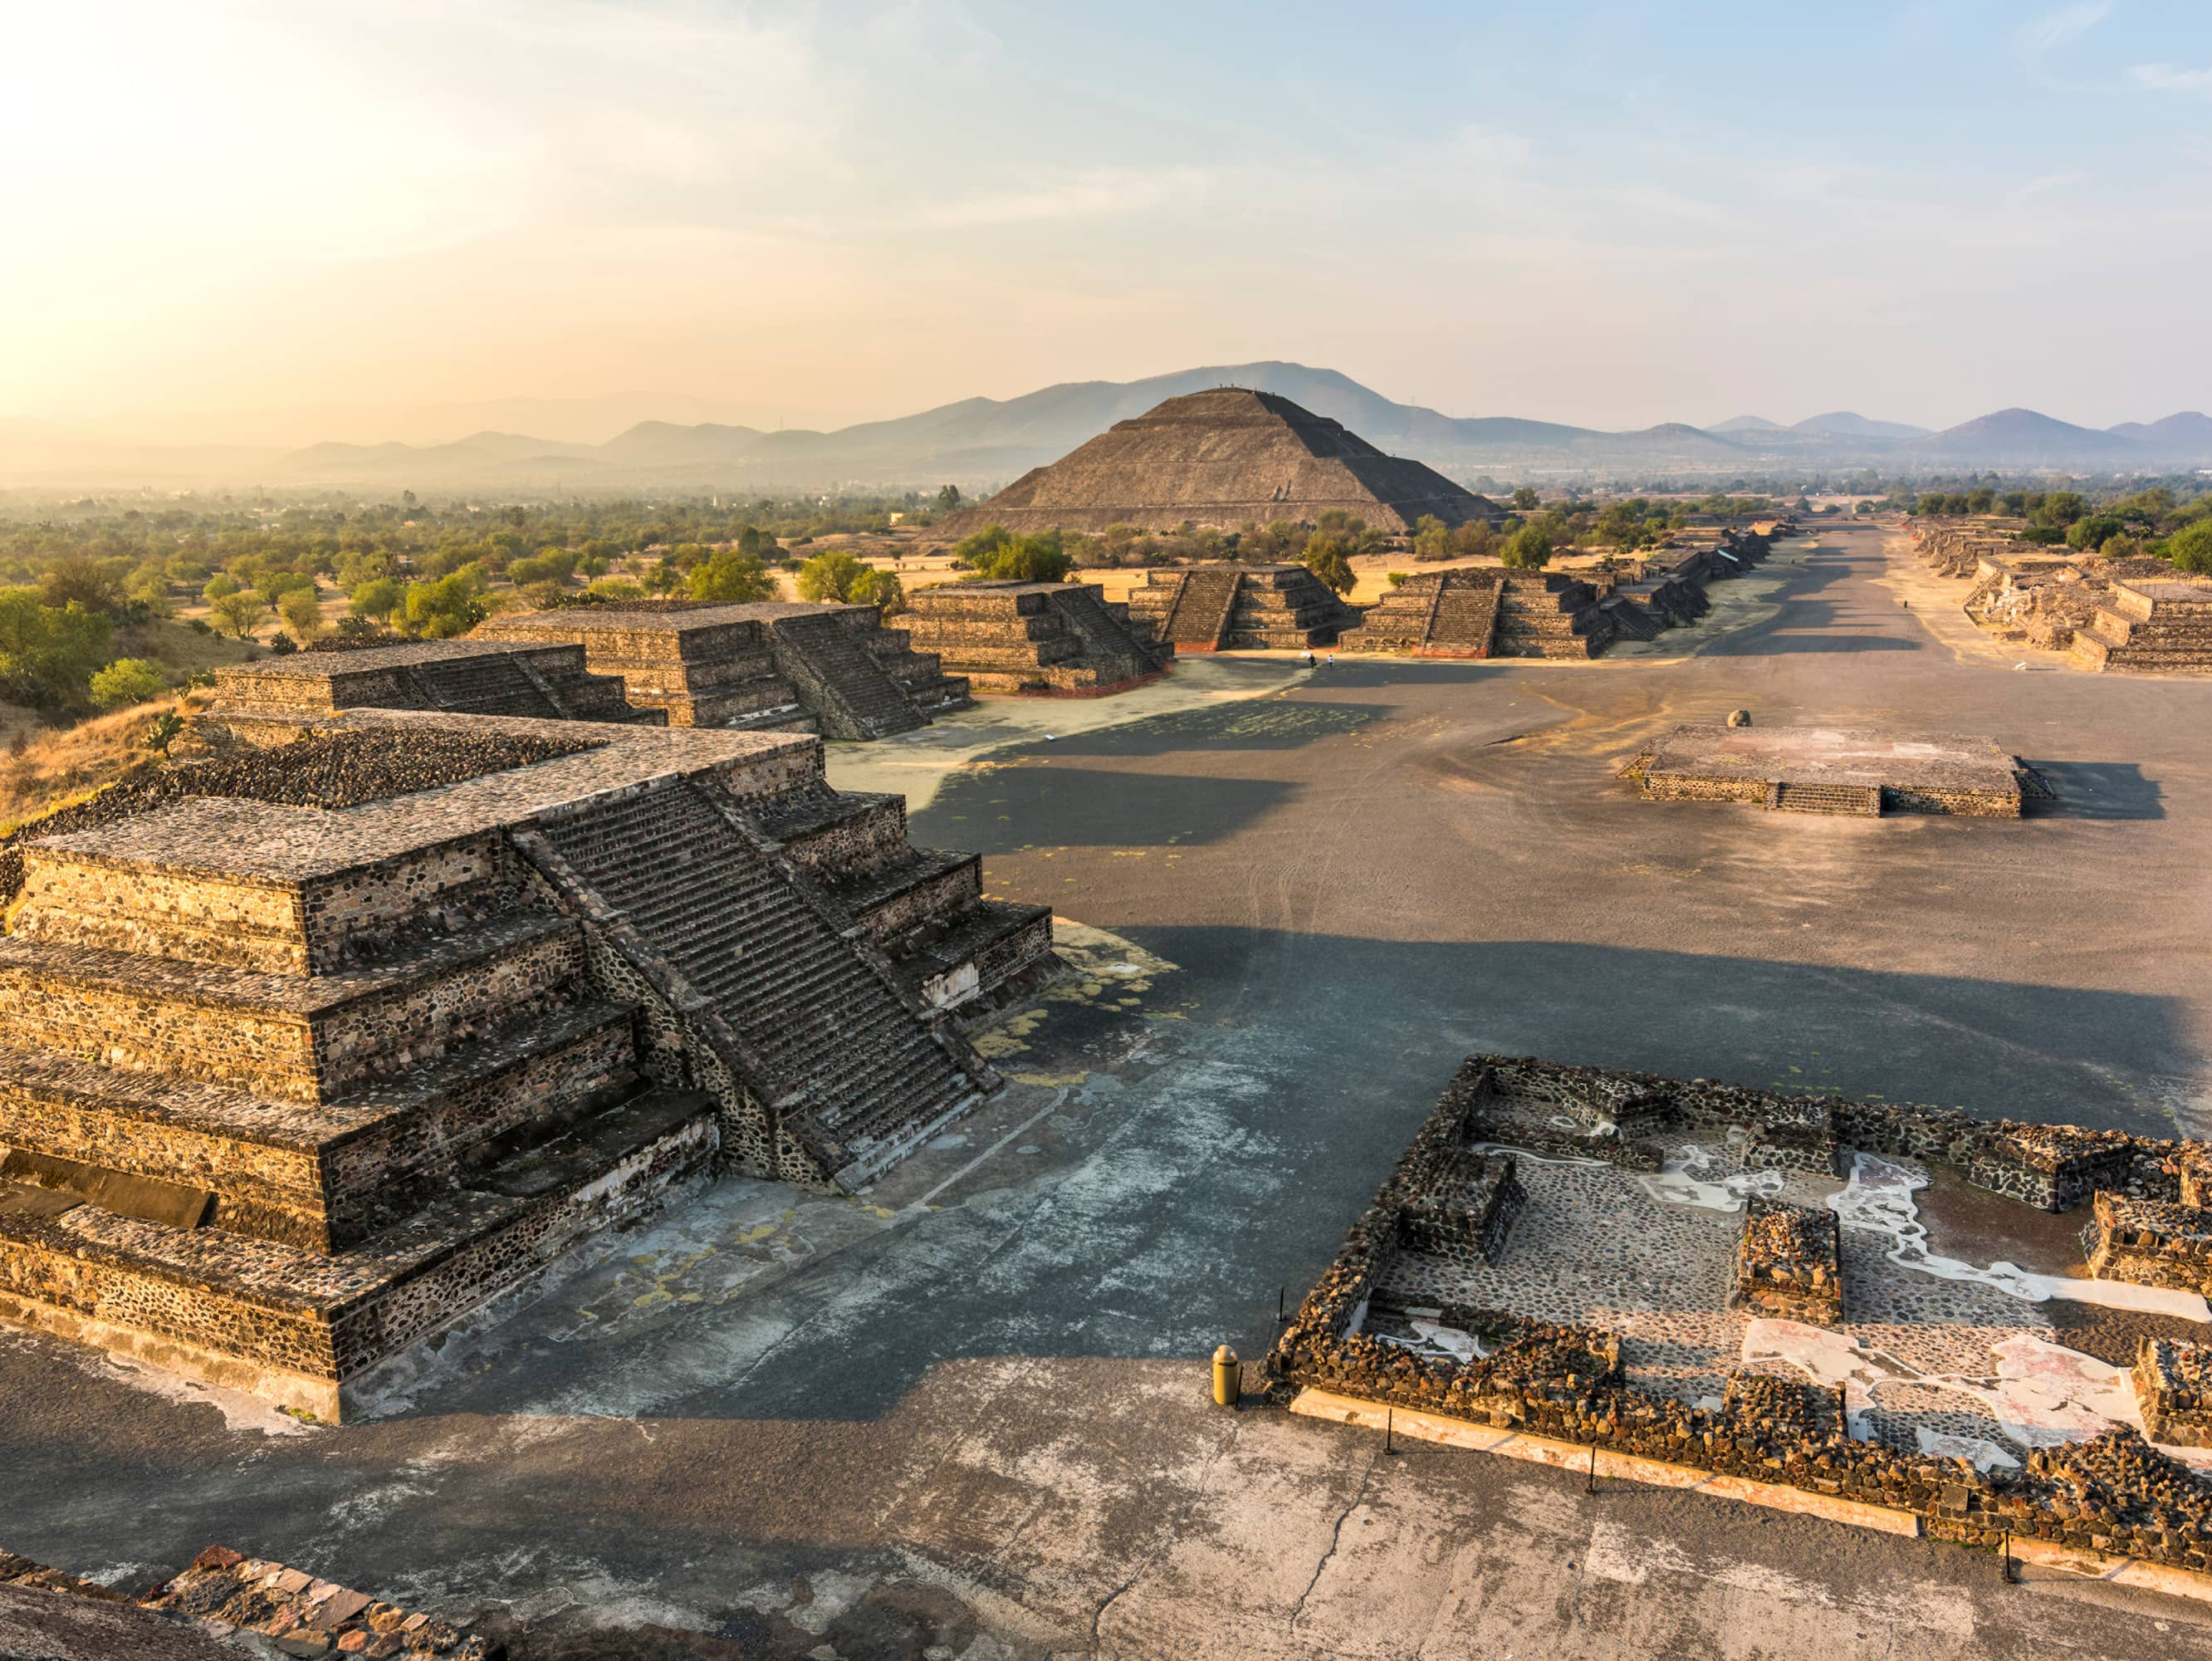 Visit the Teotihuacan Pyramids